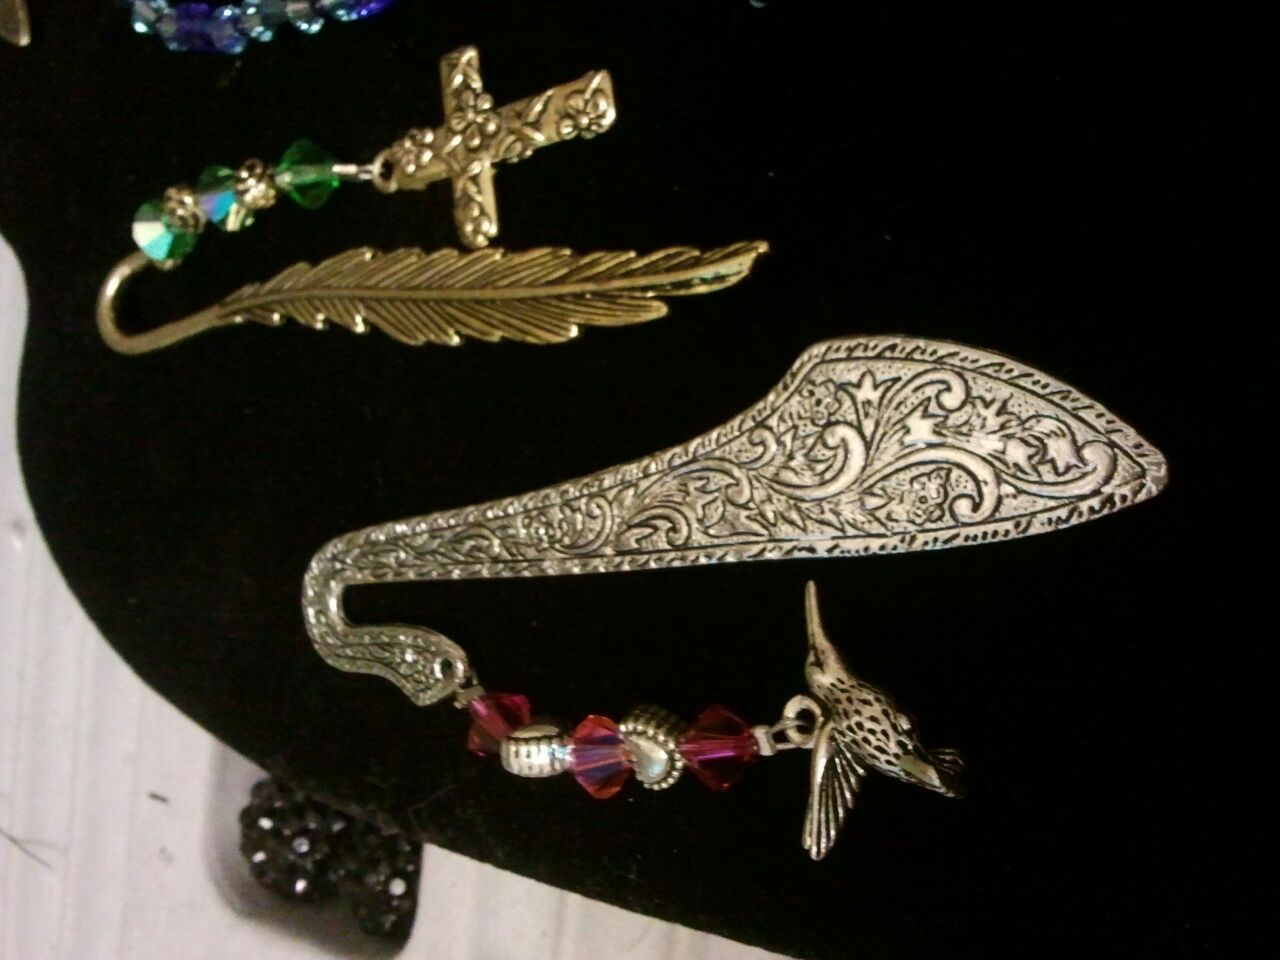 these are two book marks made with swarovski crystals, gold cross with green beads and hummingbird with purple crystals